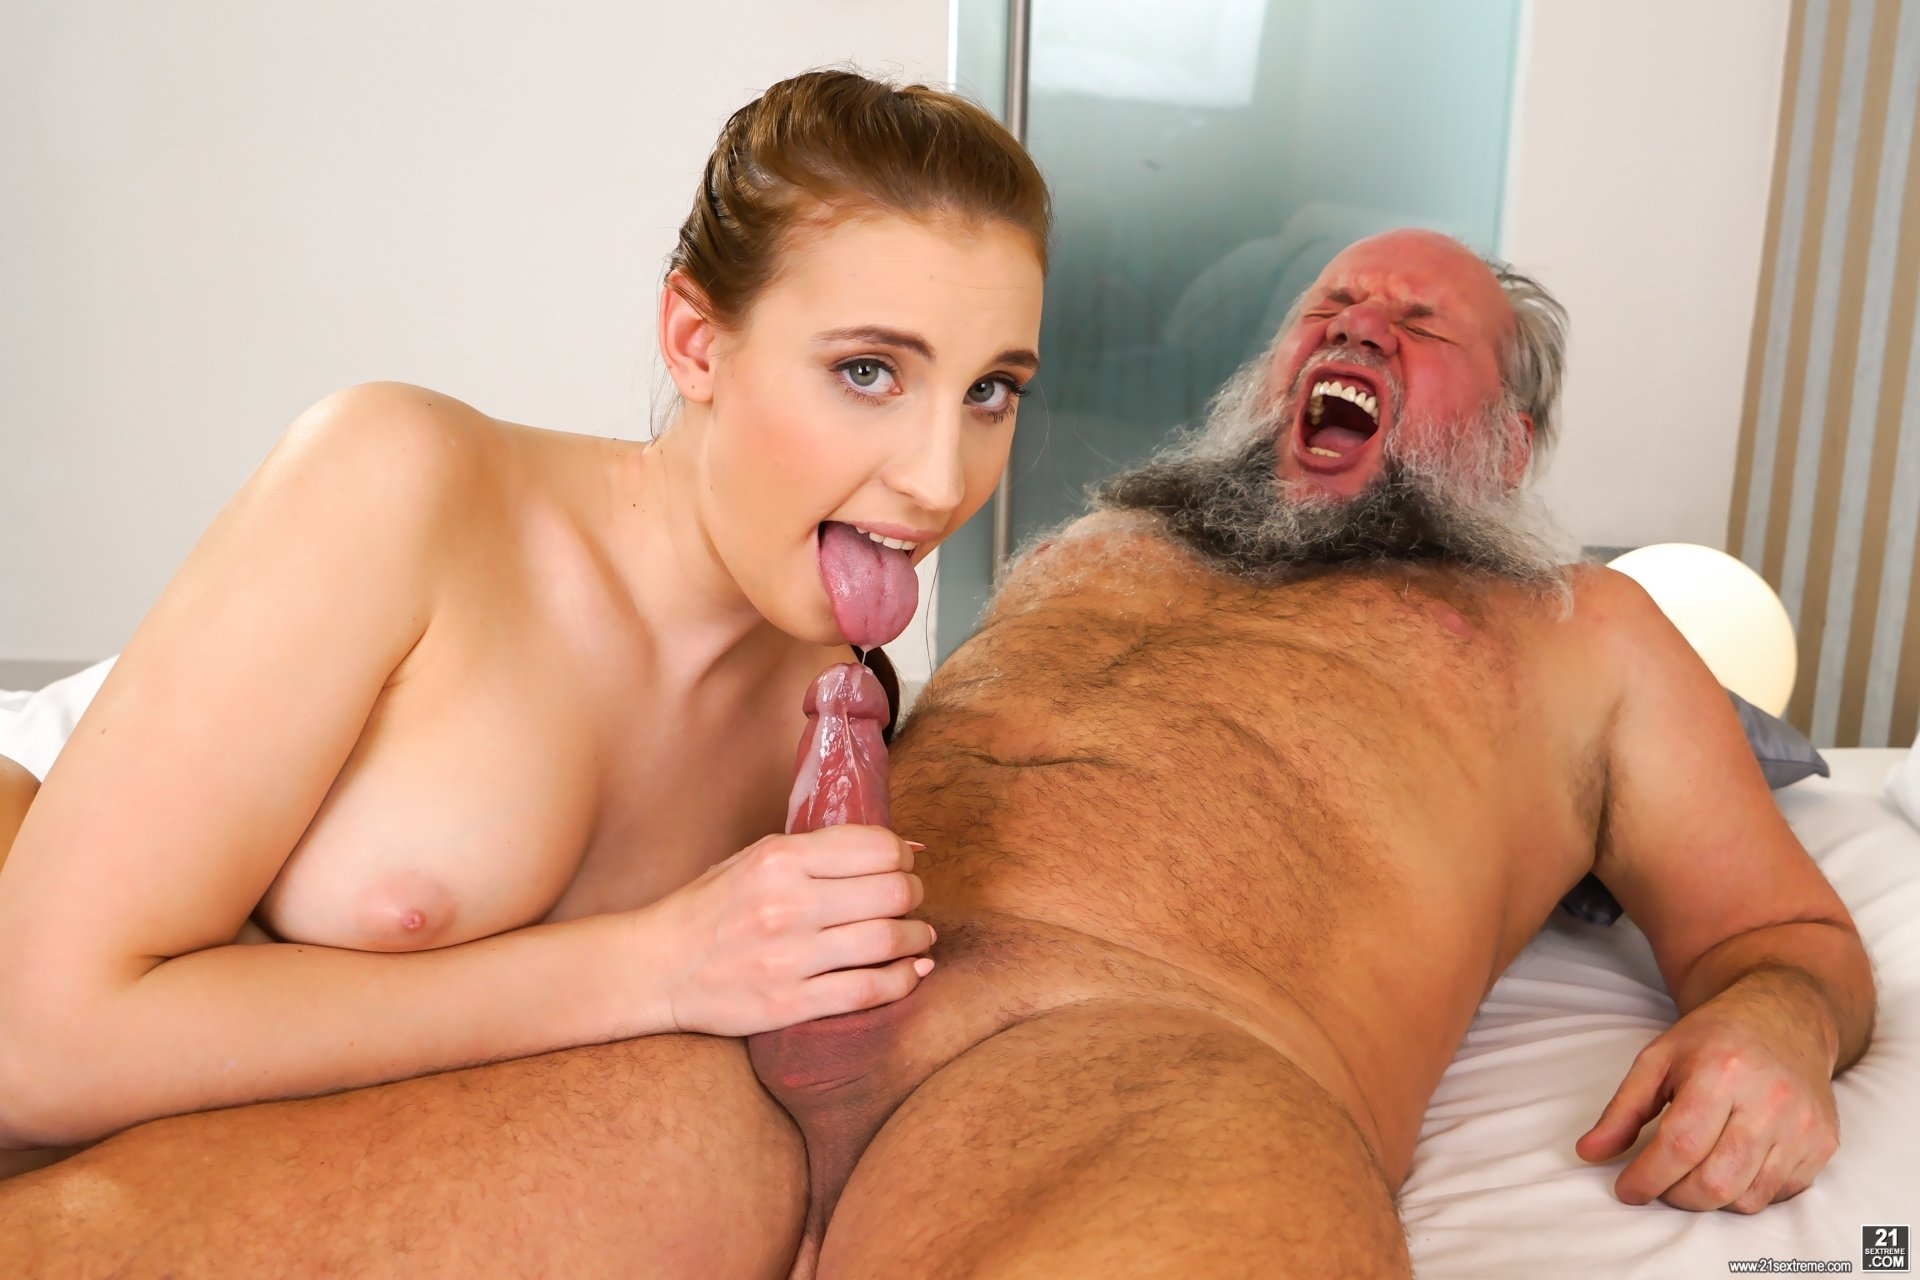 real-orgasm-with-old-man-lesbo-female-stud-porn-action